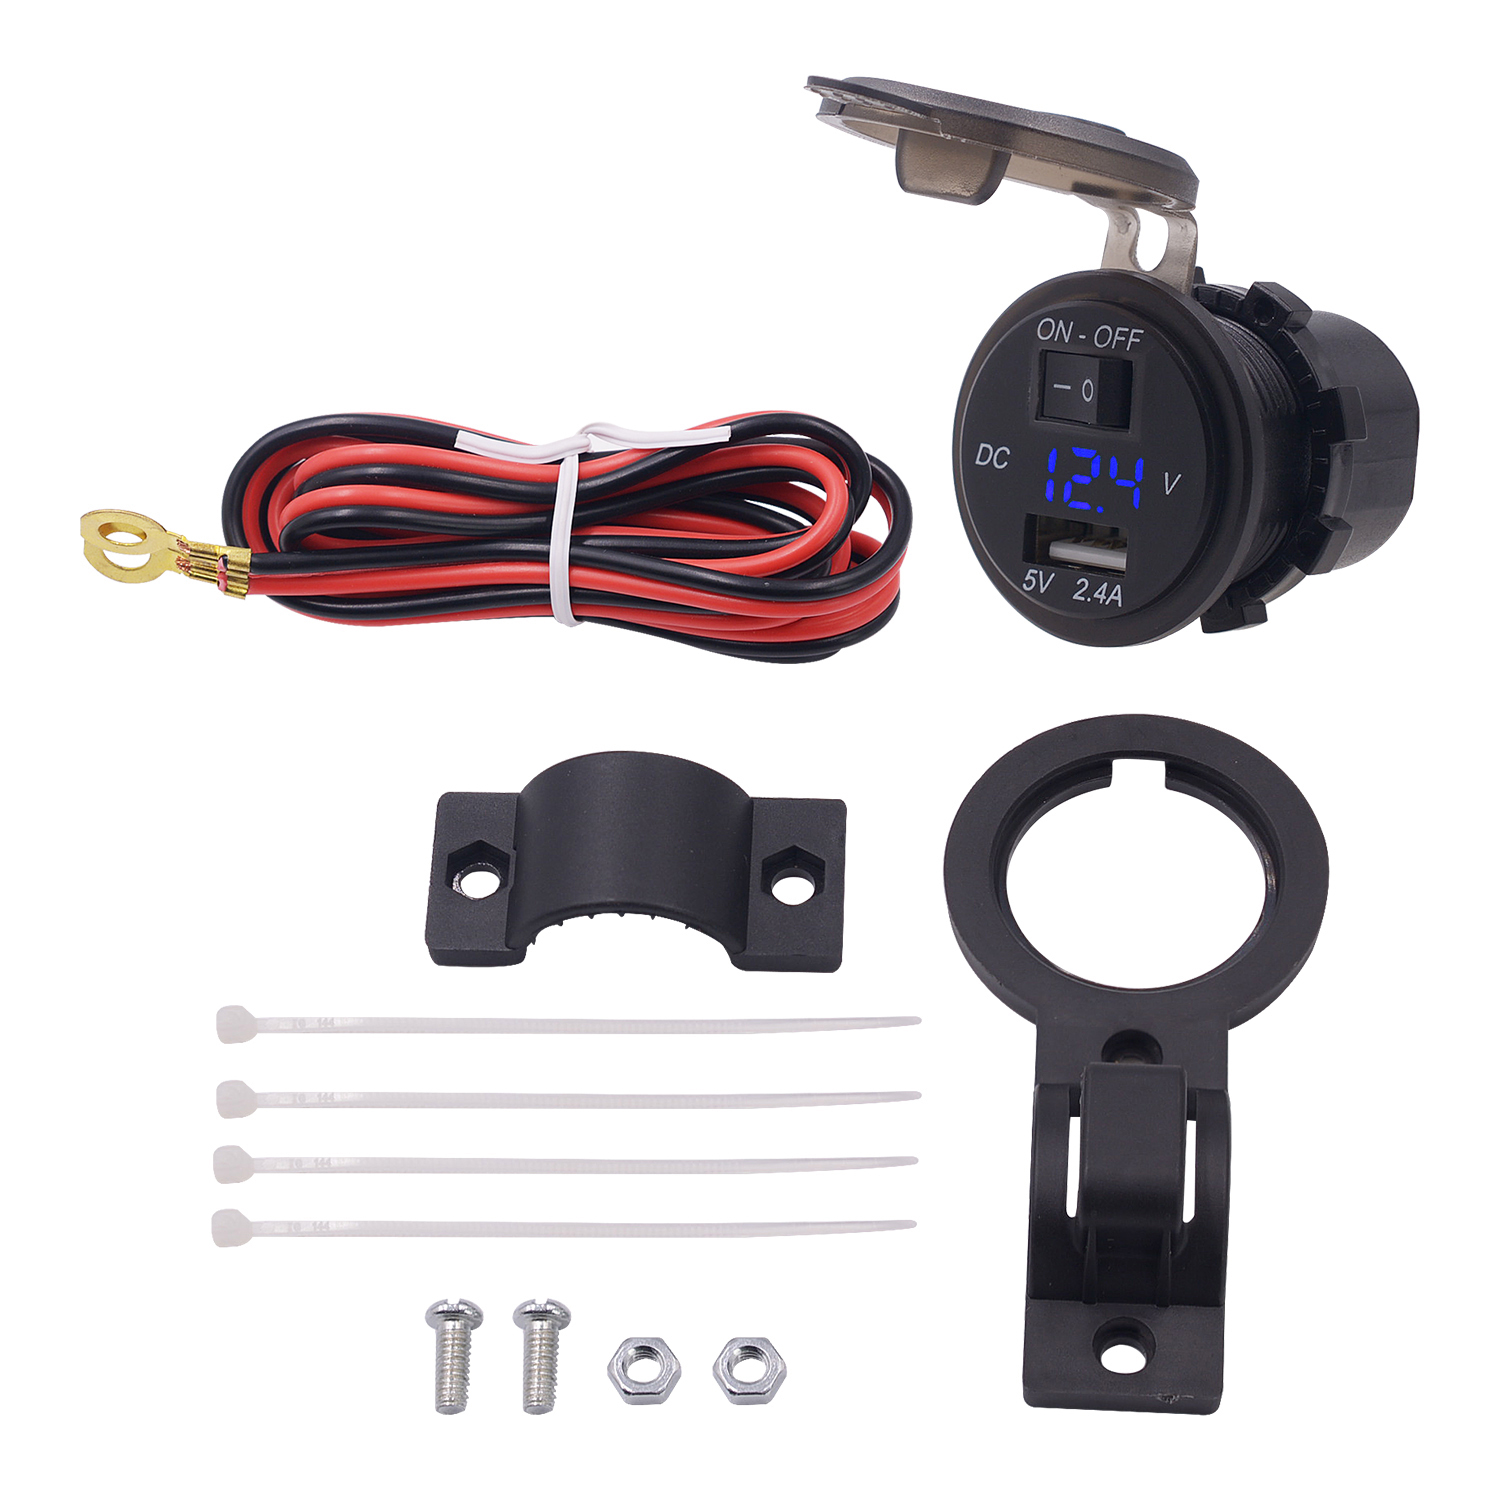 Switch USB Voltage Meter: 6-38V Voltmeter Support For All Phones Pad Car Appliances For Motorcycle ATV Snowmobile Fixed Holder